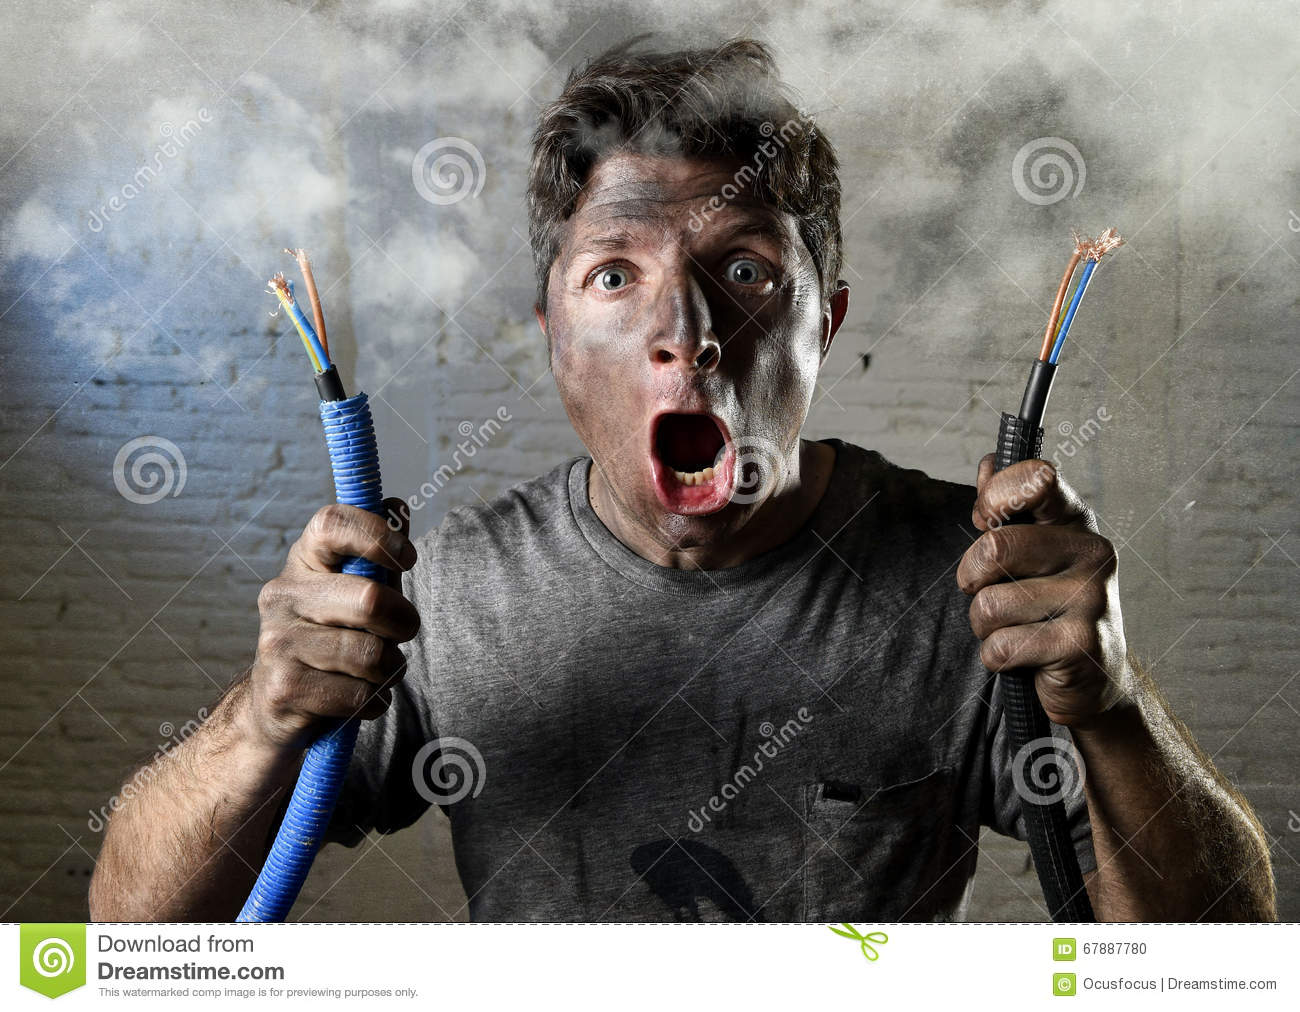 Untrained man joining electrical cable suffering electrical accident with dirty burnt face in funny shock expression